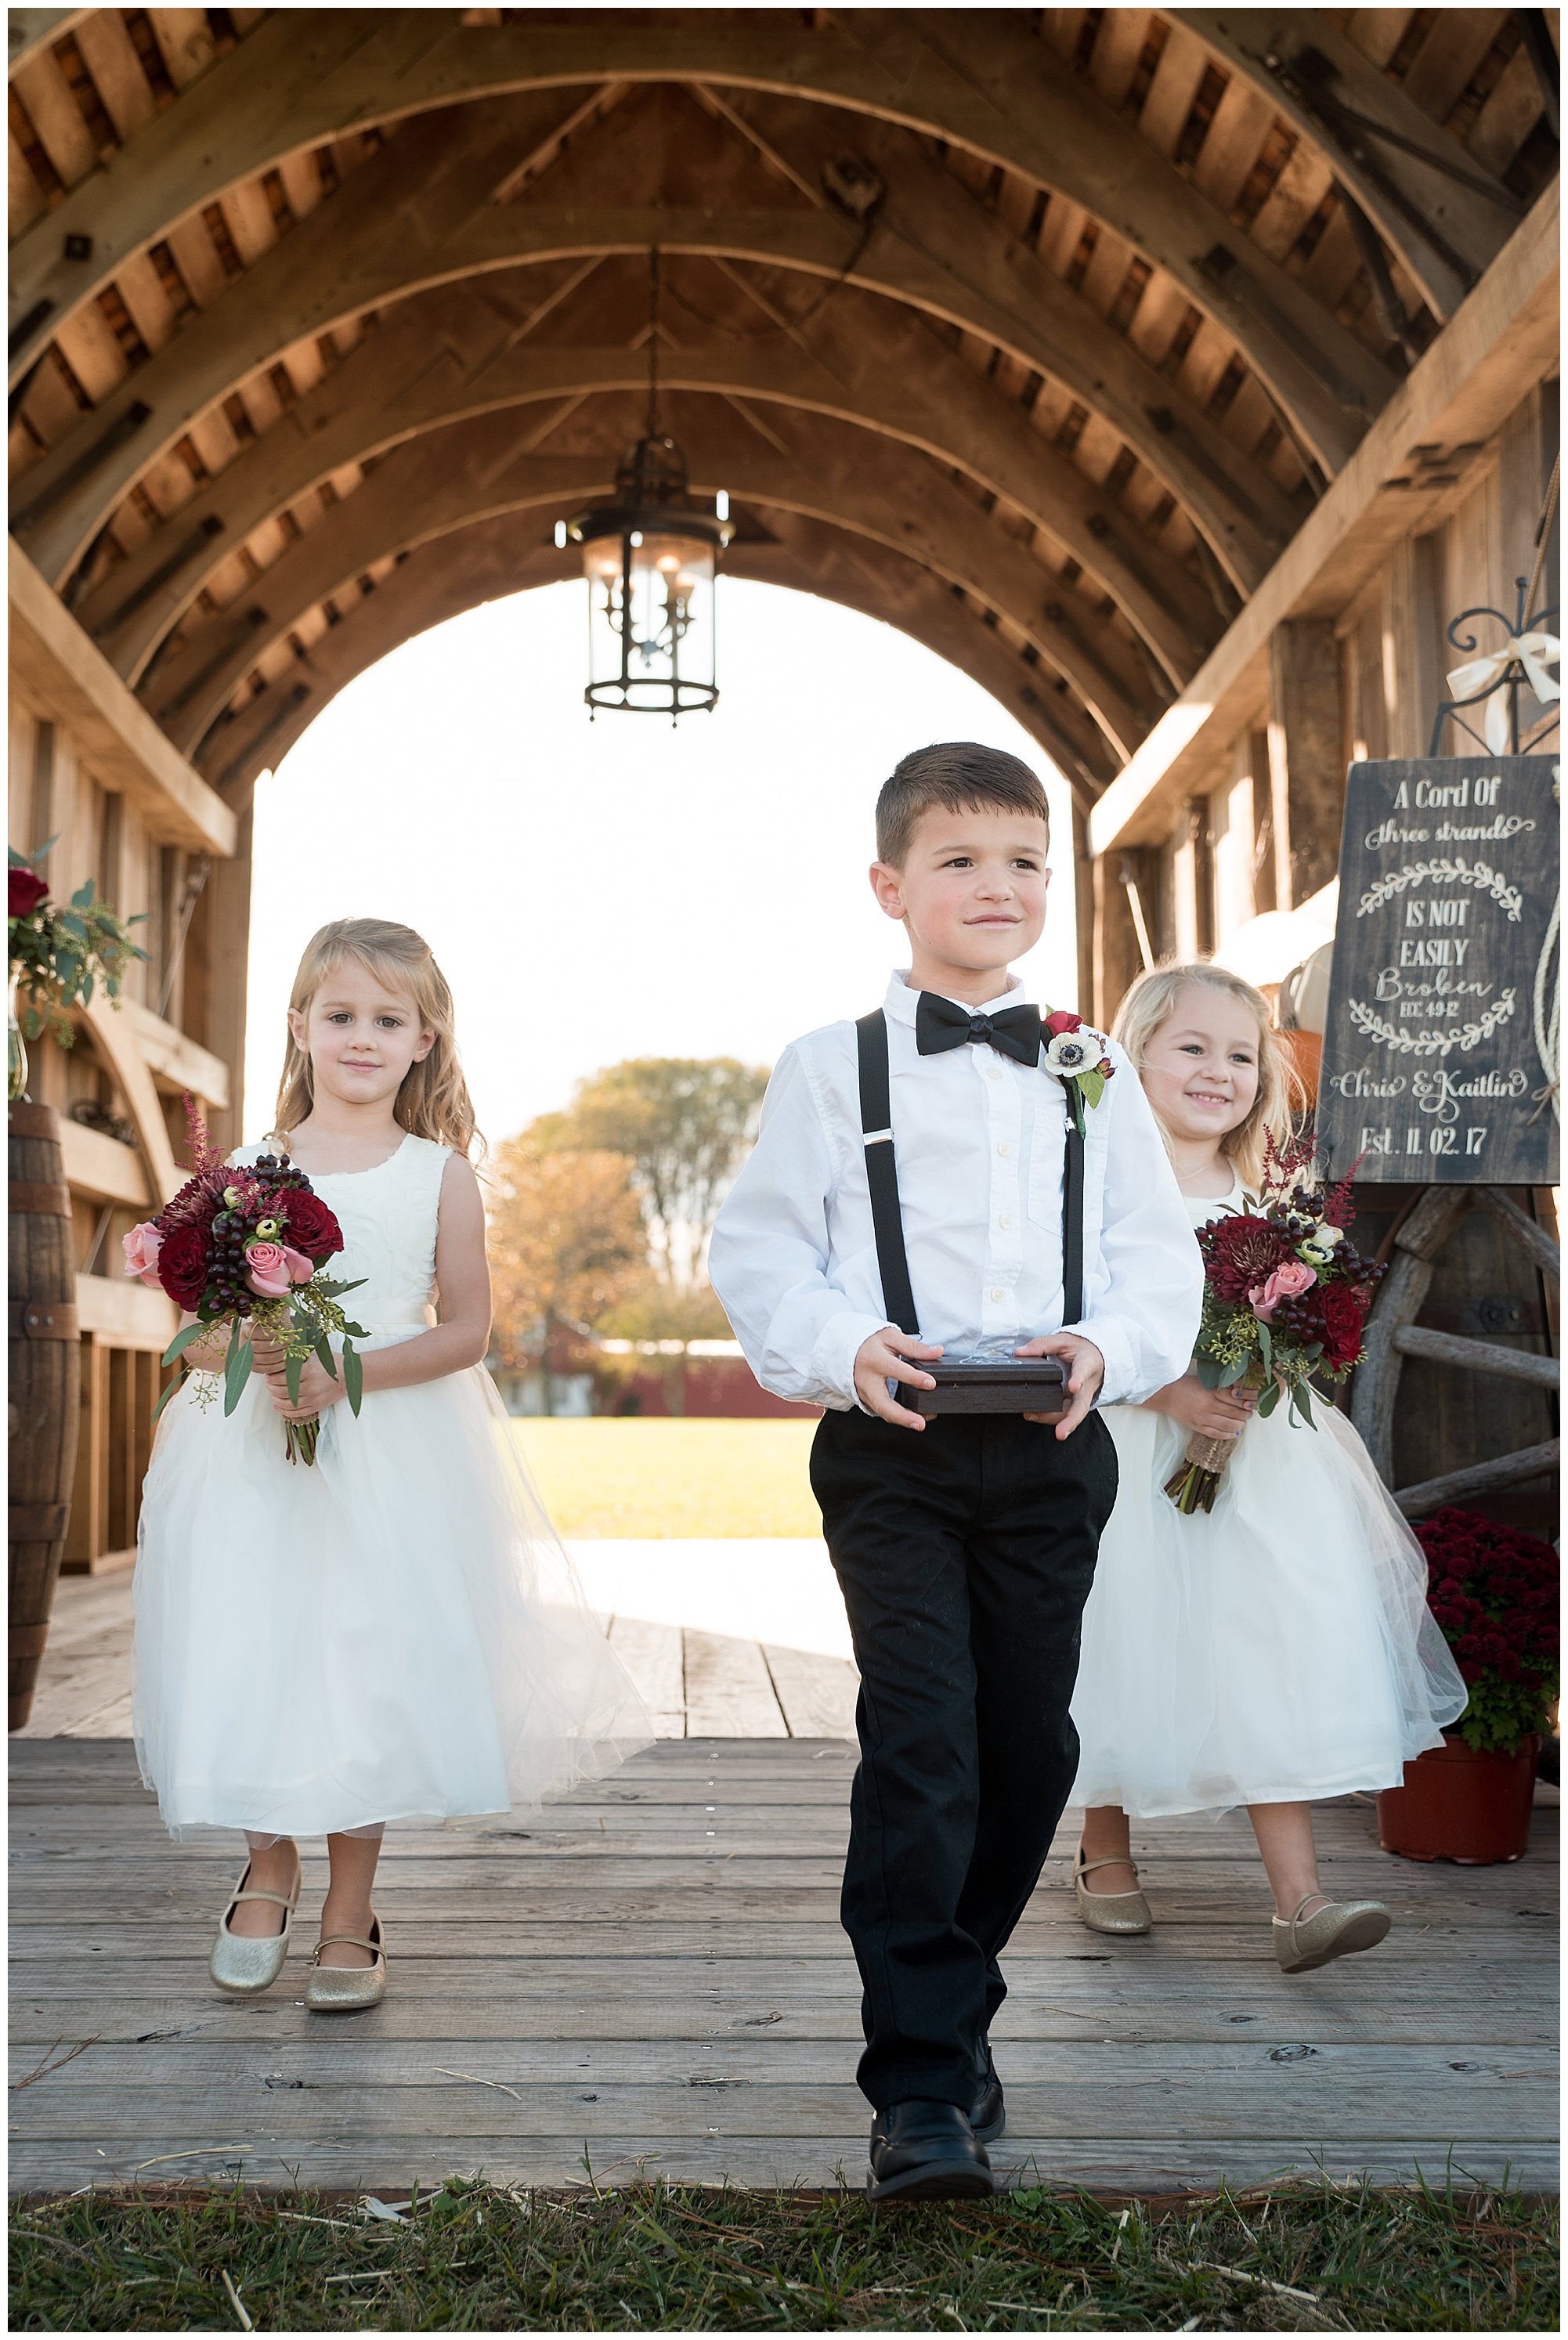 flower girls and ring bearer walking down the aisle. wedding photos outdoors at covered bridge inn in lewes delaware. historic wedding barn venue on the eastern shore. fall wedding in november with rustic decor theme.